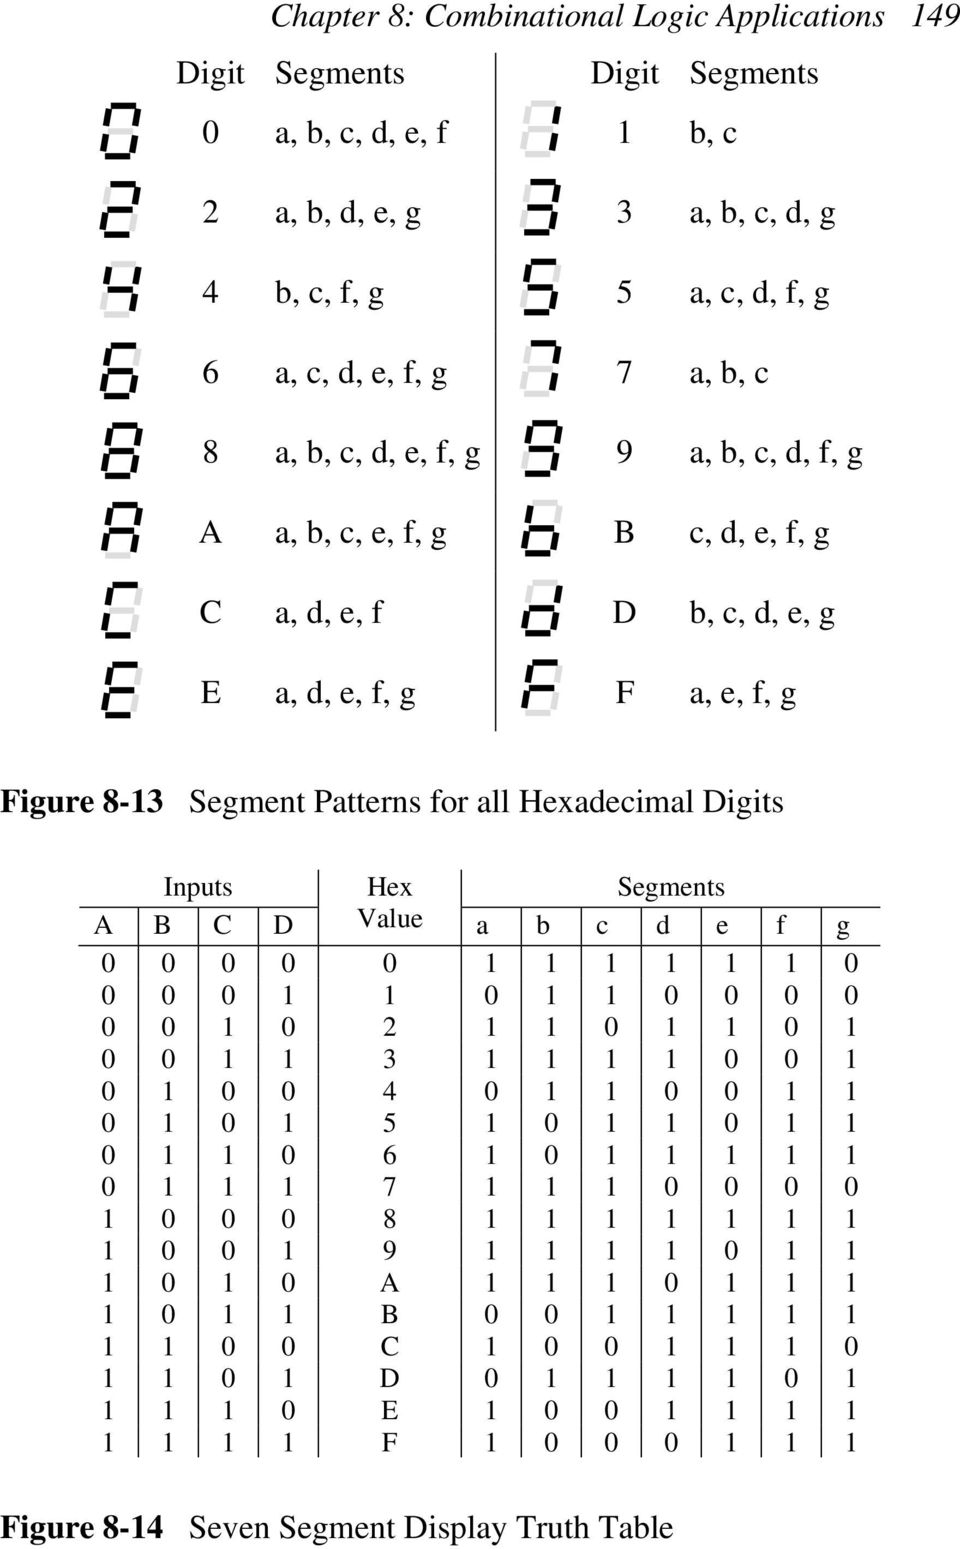 g c, d, e, f, g C a, d, e, f D b, c, d, e, g E a, d, e, f, g F a, e, f, g Figure 8-3 Segment Patterns for all Hexadecimal